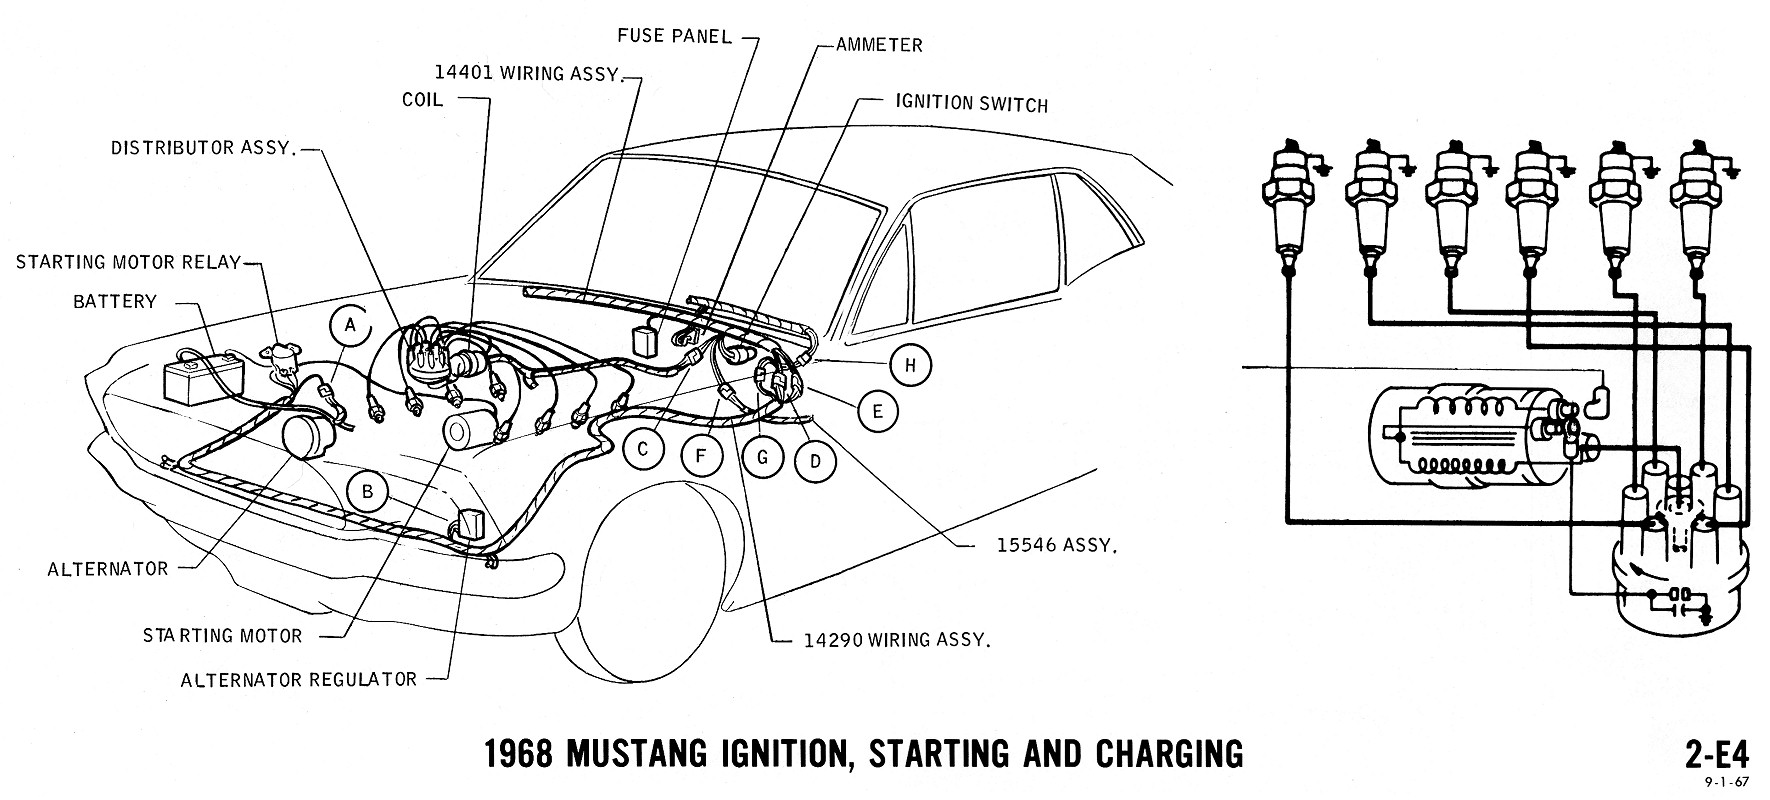 1968 mustang wiring diagrams and vacuum schematics average joe 1968 mustang wiring diagram ignition starting charging 2 cheapraybanclubmaster Images